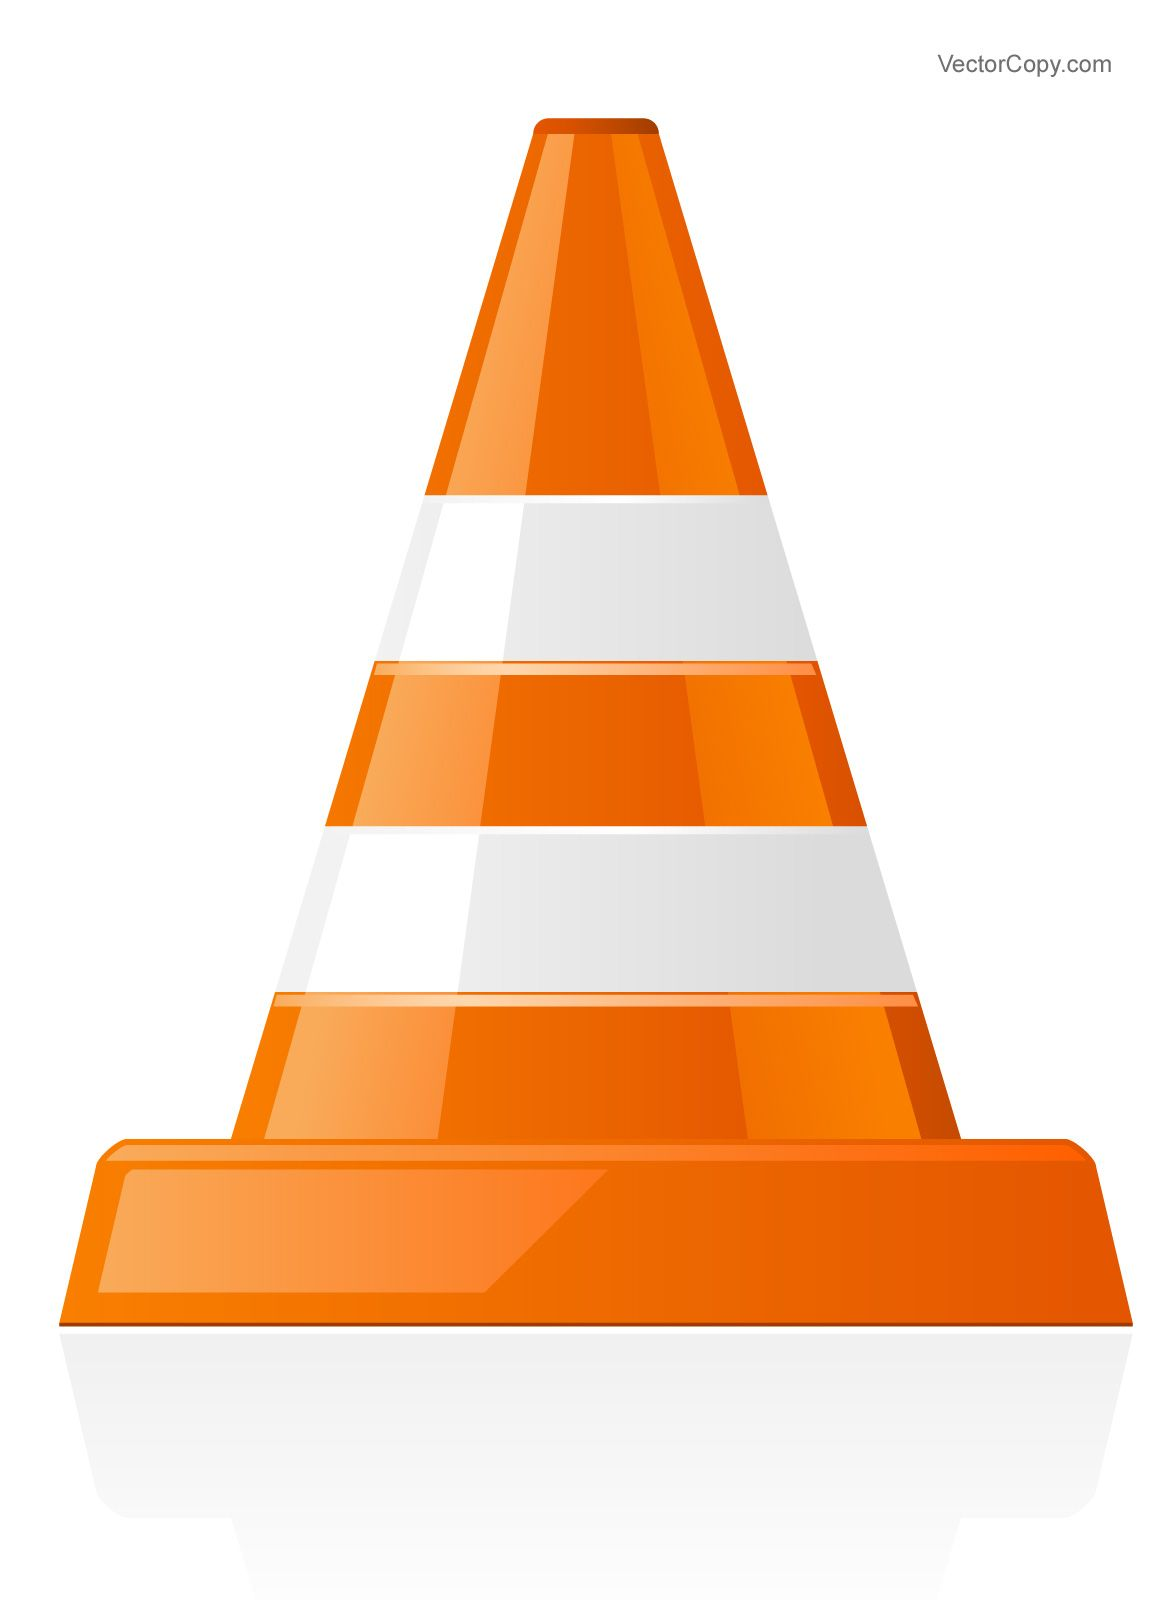 Traffic cone icon, free vector in 2019.